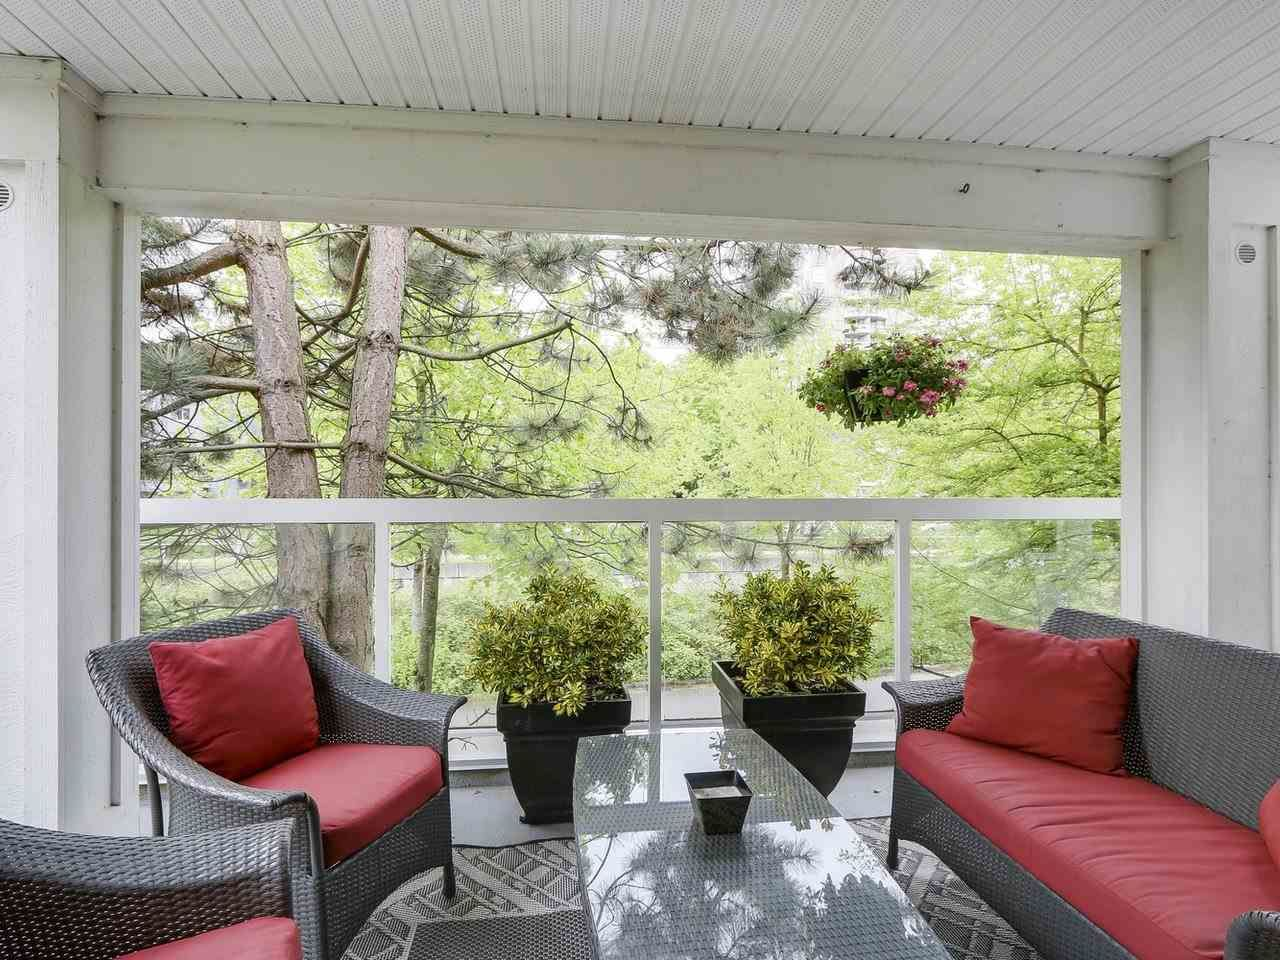 """Main Photo: 217 3038 E KENT SOUTH Avenue in Vancouver: Fraserview VE Condo for sale in """"SOUTH HAMPTON"""" (Vancouver East)  : MLS®# R2164192"""